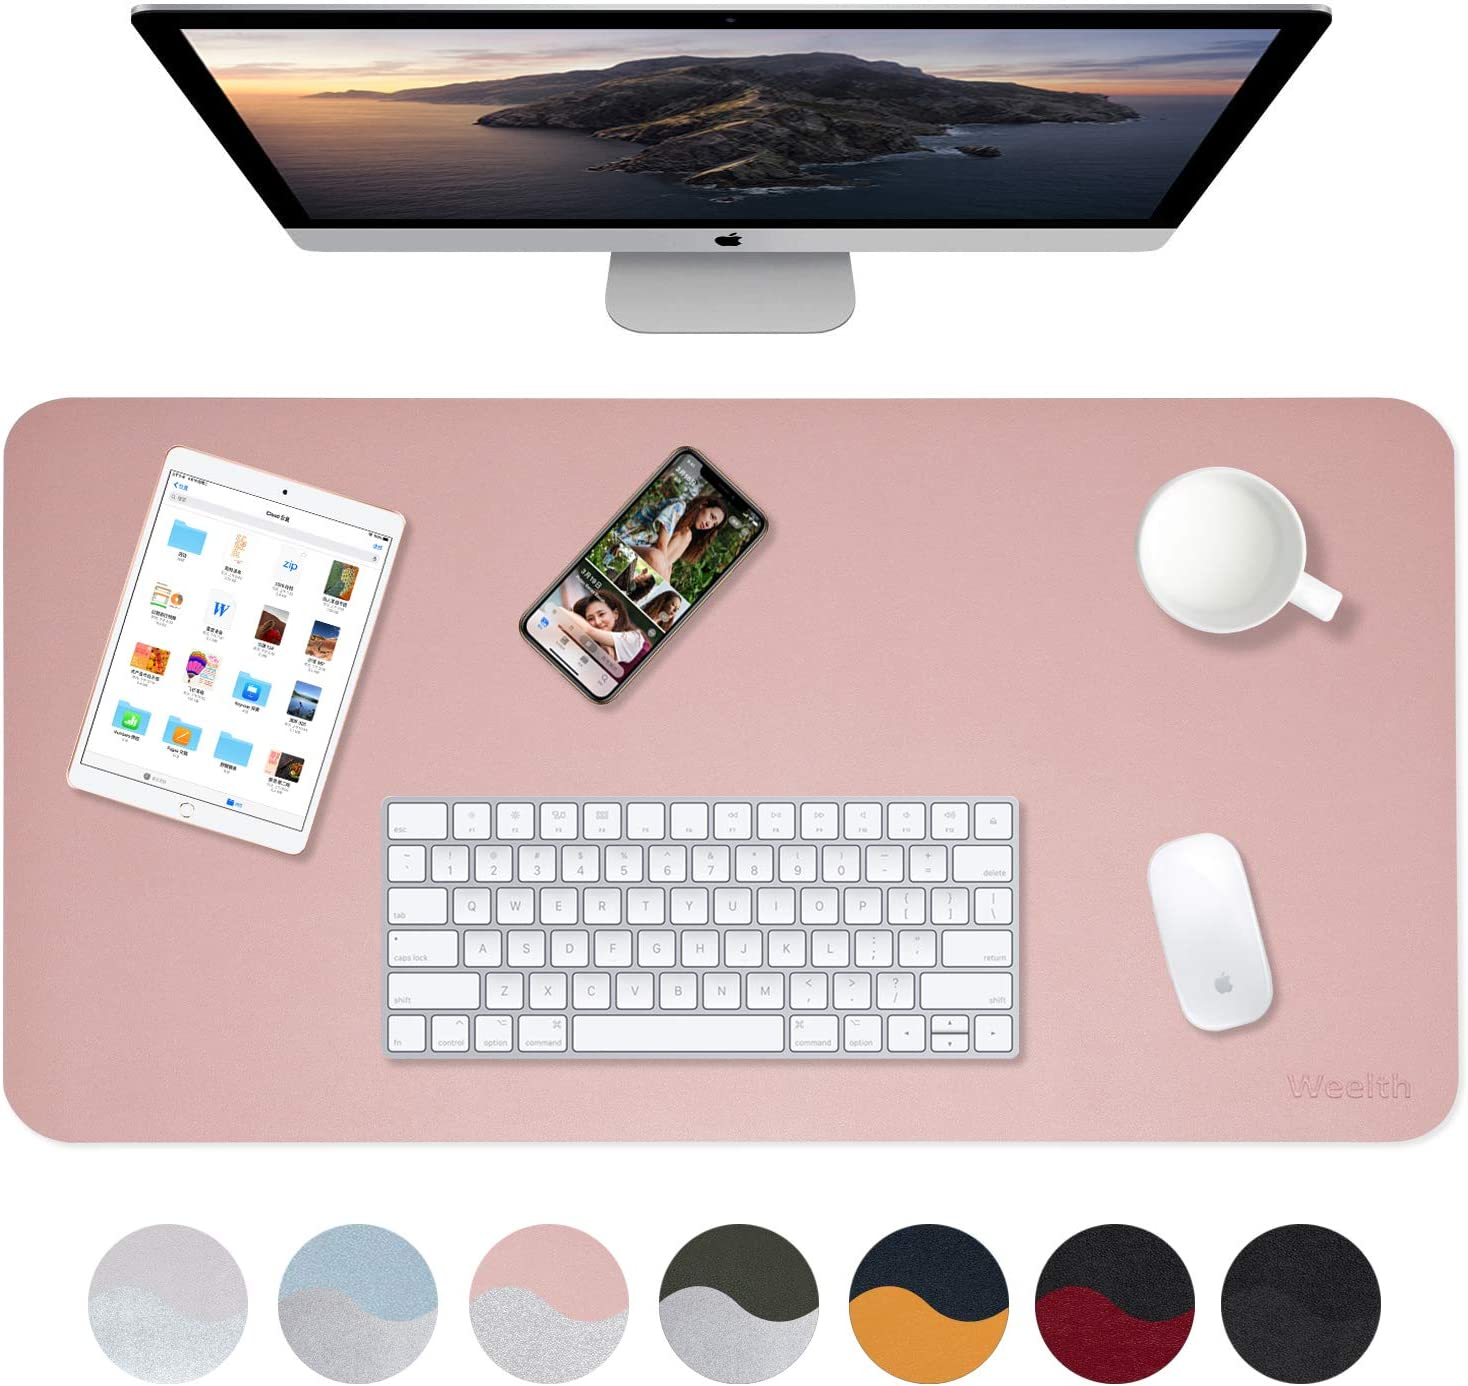 """Weelth Multifunctional Office Desk Pad, 35.4"""" x 17"""" Waterproof Desk Pad Protector PU Leather Dual-Sided Desk Writing Pad for Office/Home (Pink/Sliver, 35.4"""" x 17"""")"""